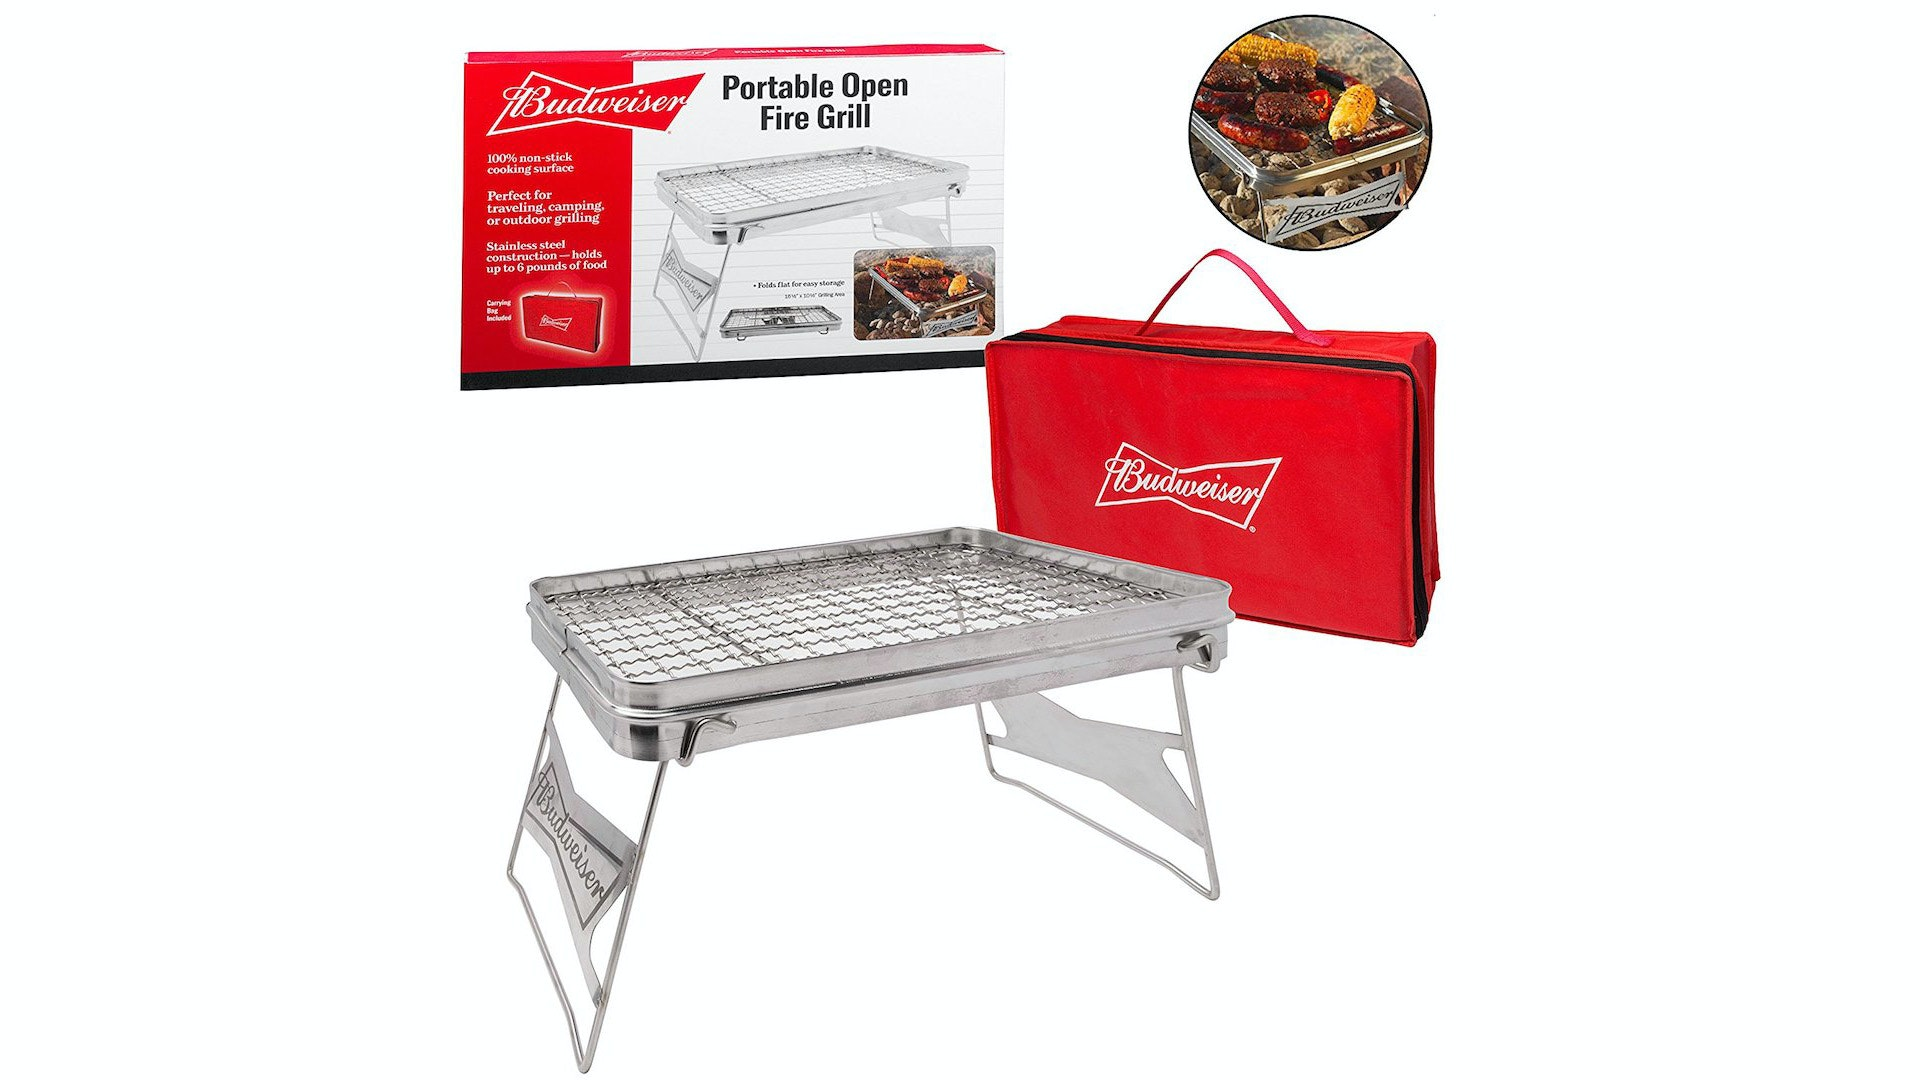 This Budweiser portable grill